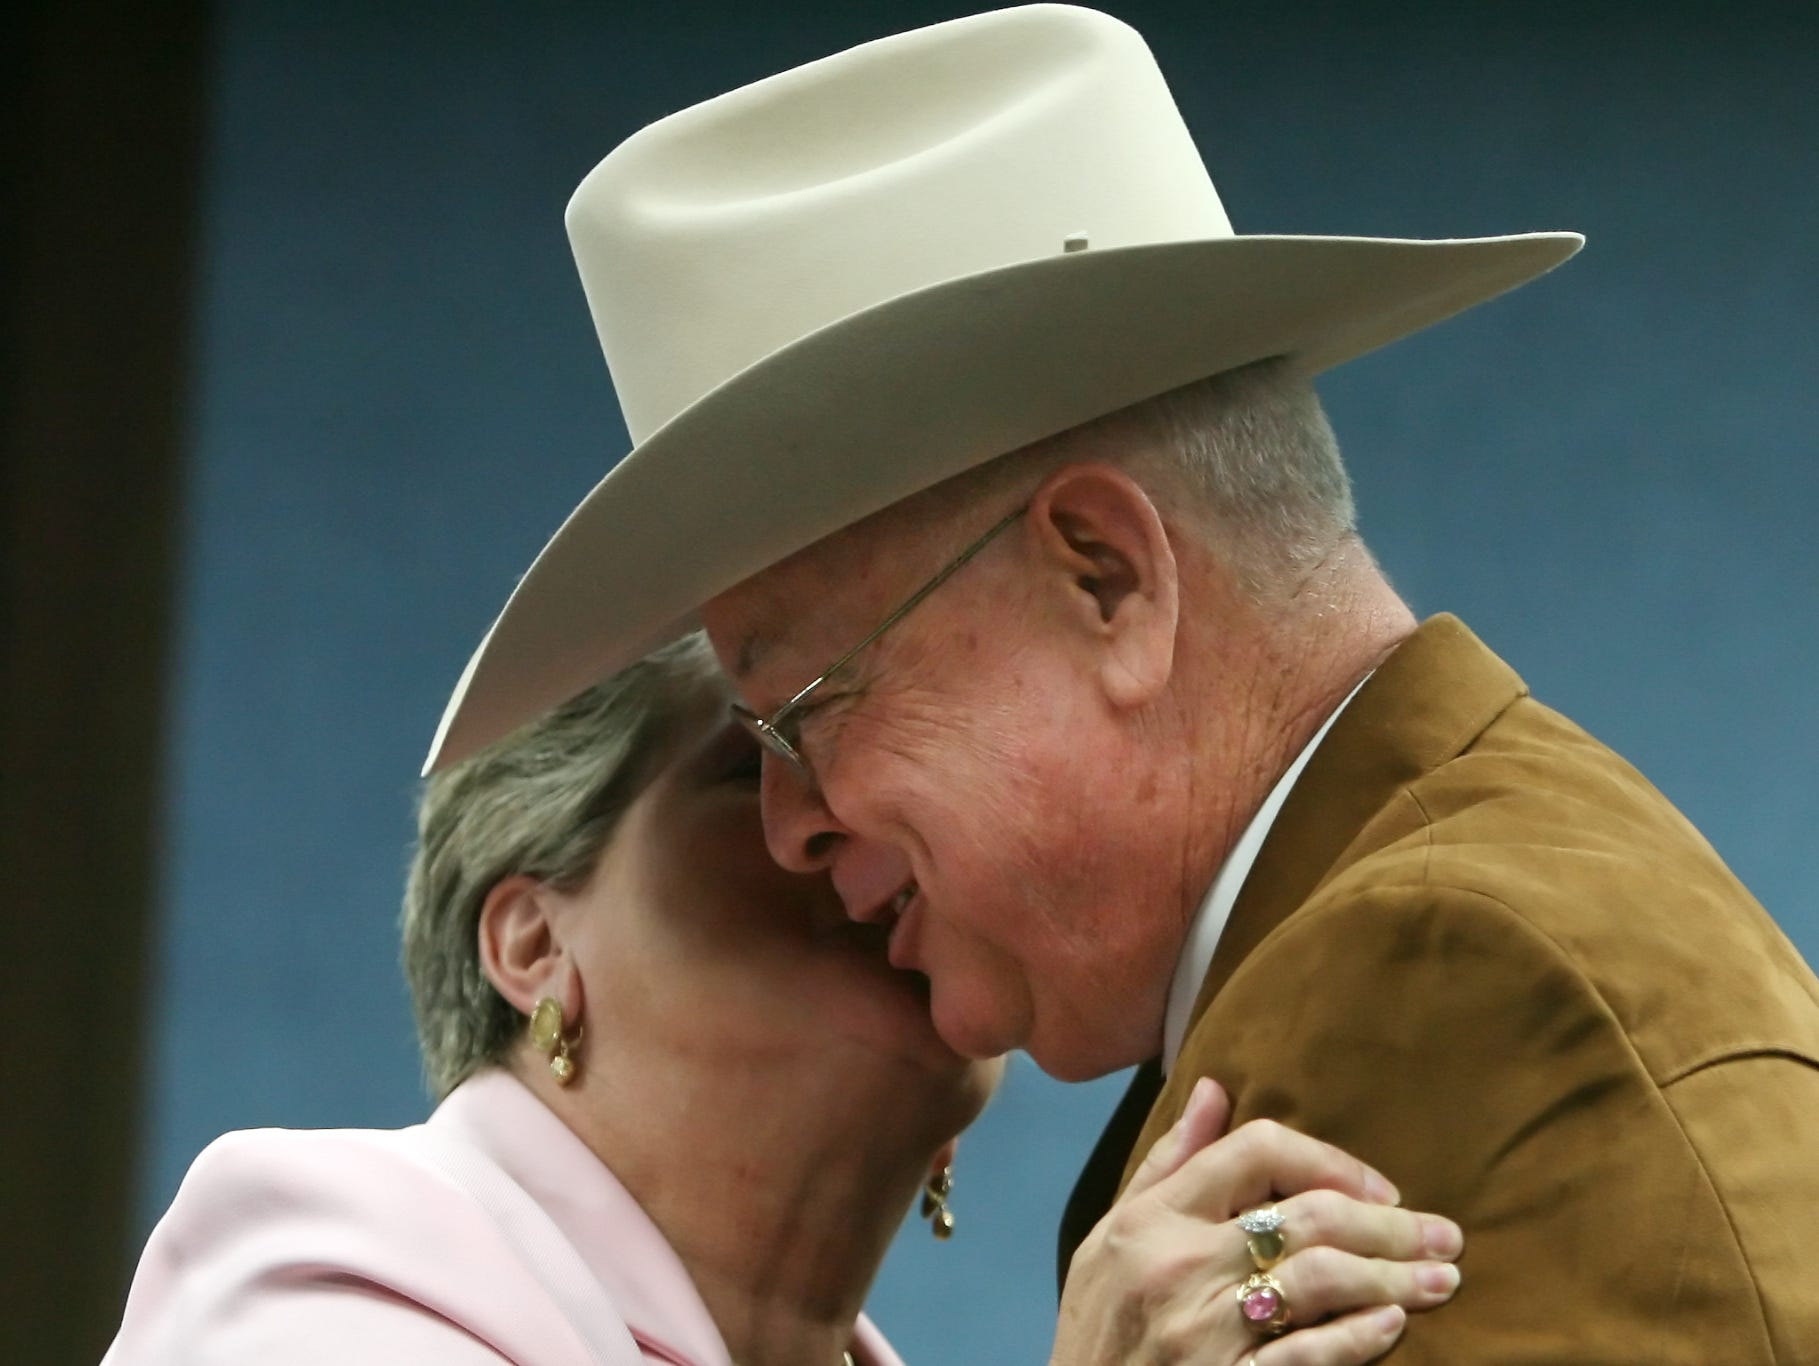 Newly elected Nueces County Sheriff Jim Kaelin (right) and his wife, Sharon Kaelin, embrace after he is sworn in at the Nueces County Courthouse on Friday. (11/17/06)